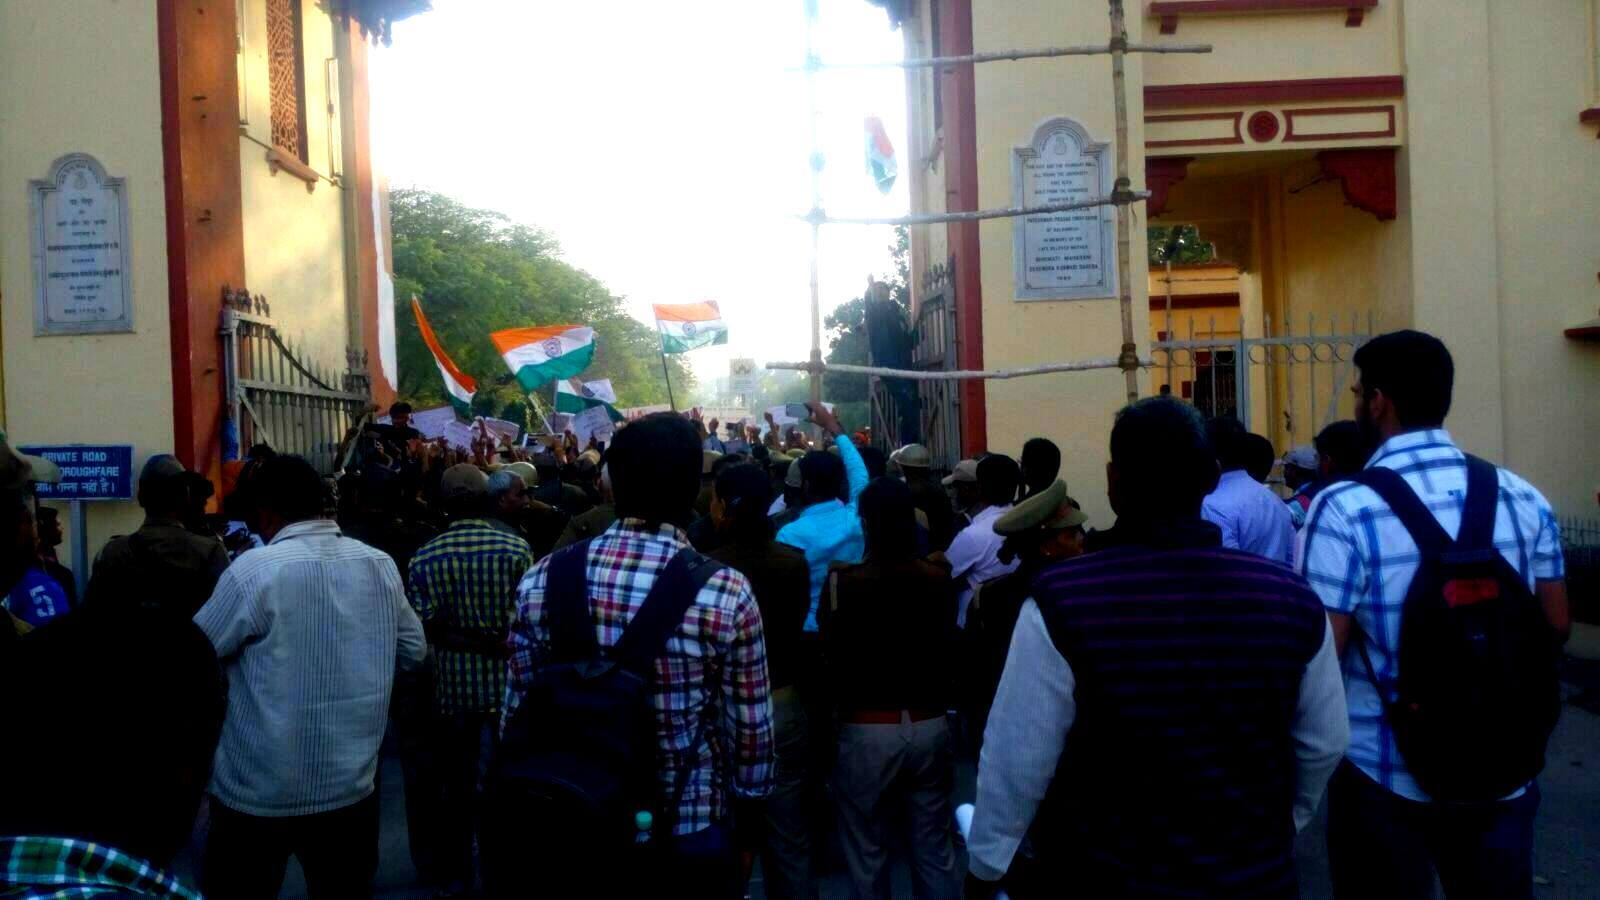 ABVP students in BHU take out a march with Indian flags. Credit: Facebook